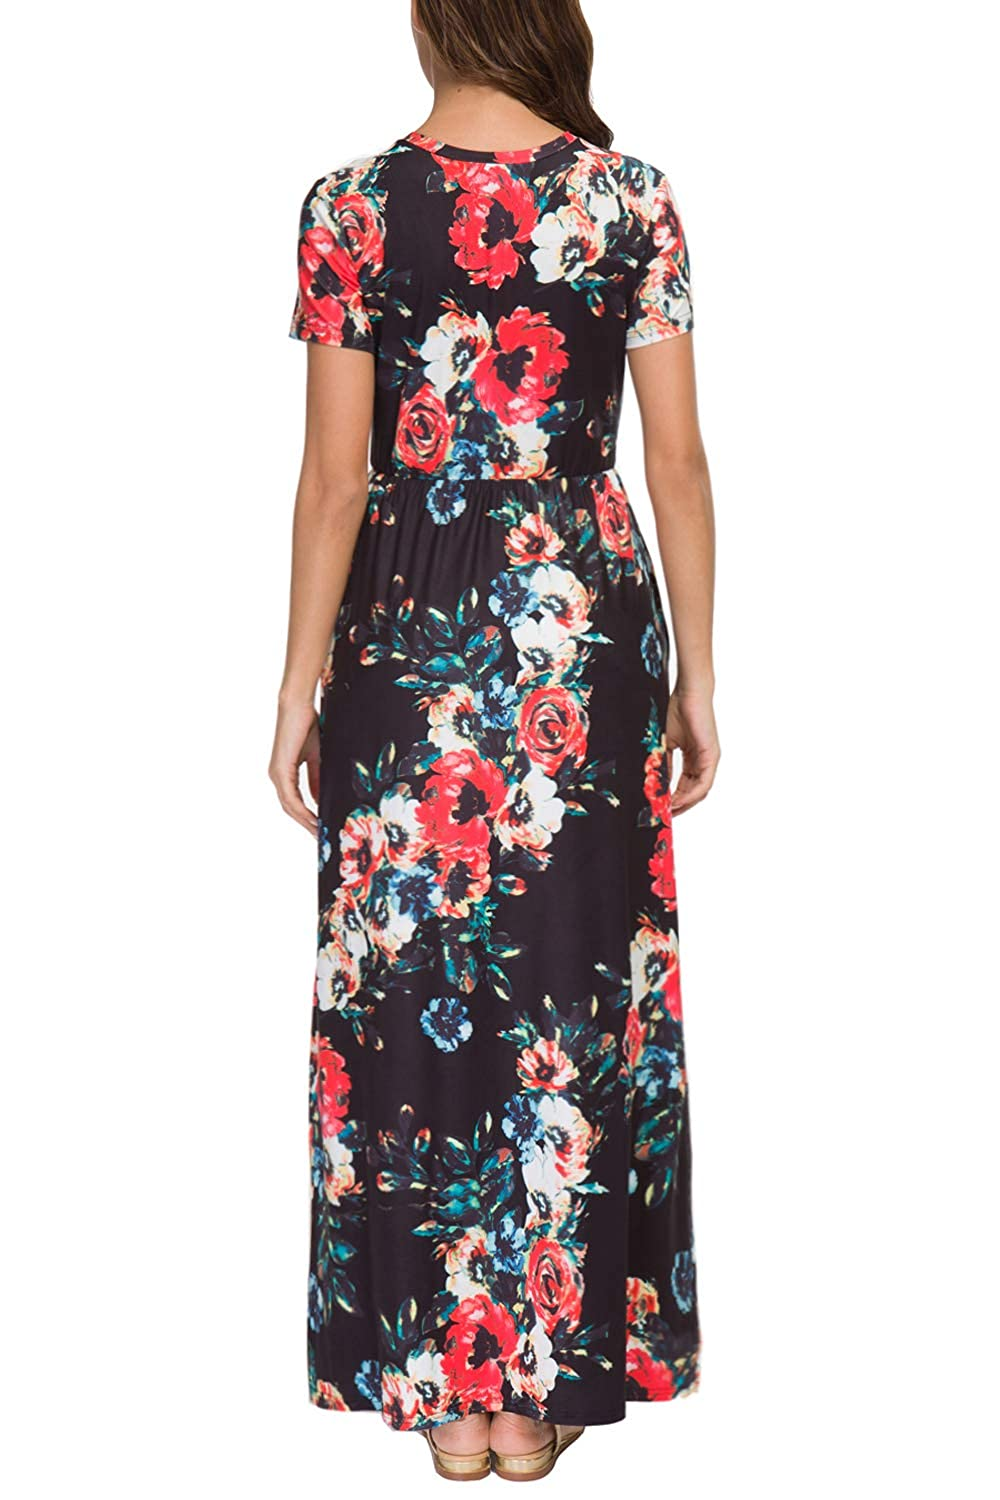 4def012c27 Zattcas Womens Summer Casual Short Sleeve Long Floral Maxi Dress with  Pockets at Amazon Women's Clothing store: